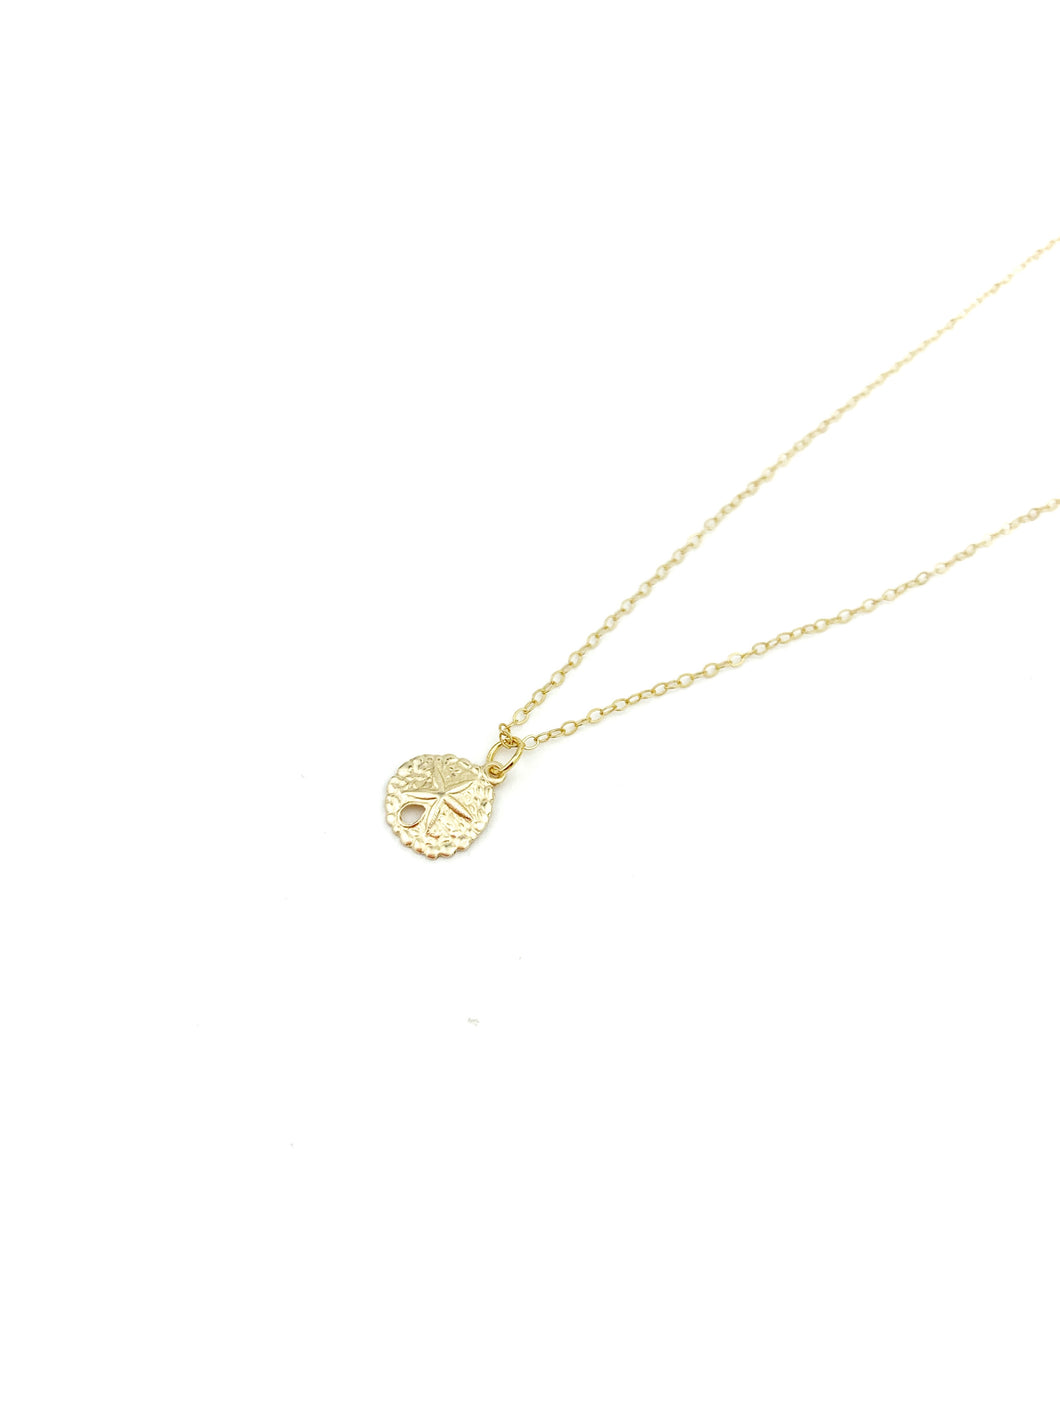 Sea Coin Gold Necklace - LoobanysJewelry